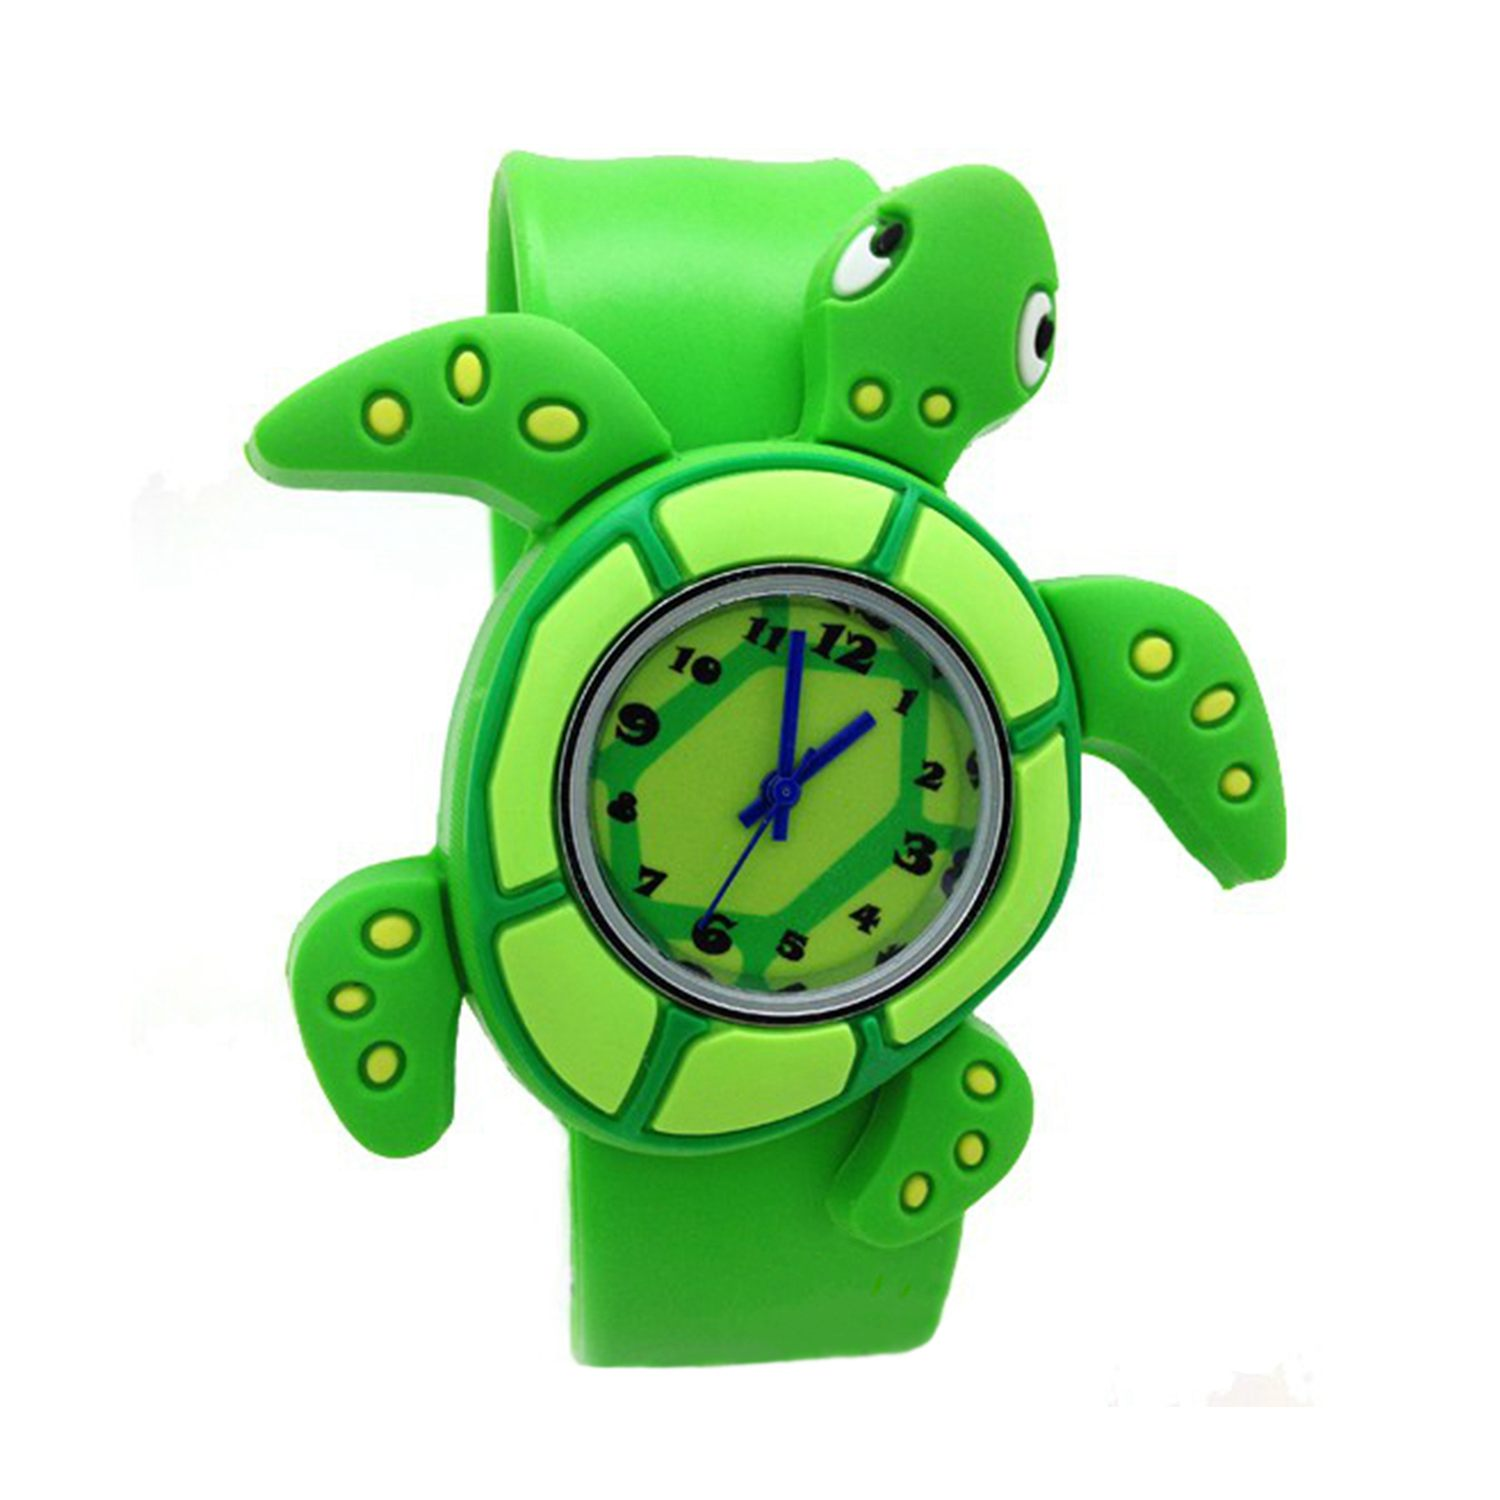 купить Children's Watches Cartoon Kids Wrist Baby Watch Clock Quartz Watches for Gifts Relogio Montre Turtle онлайн